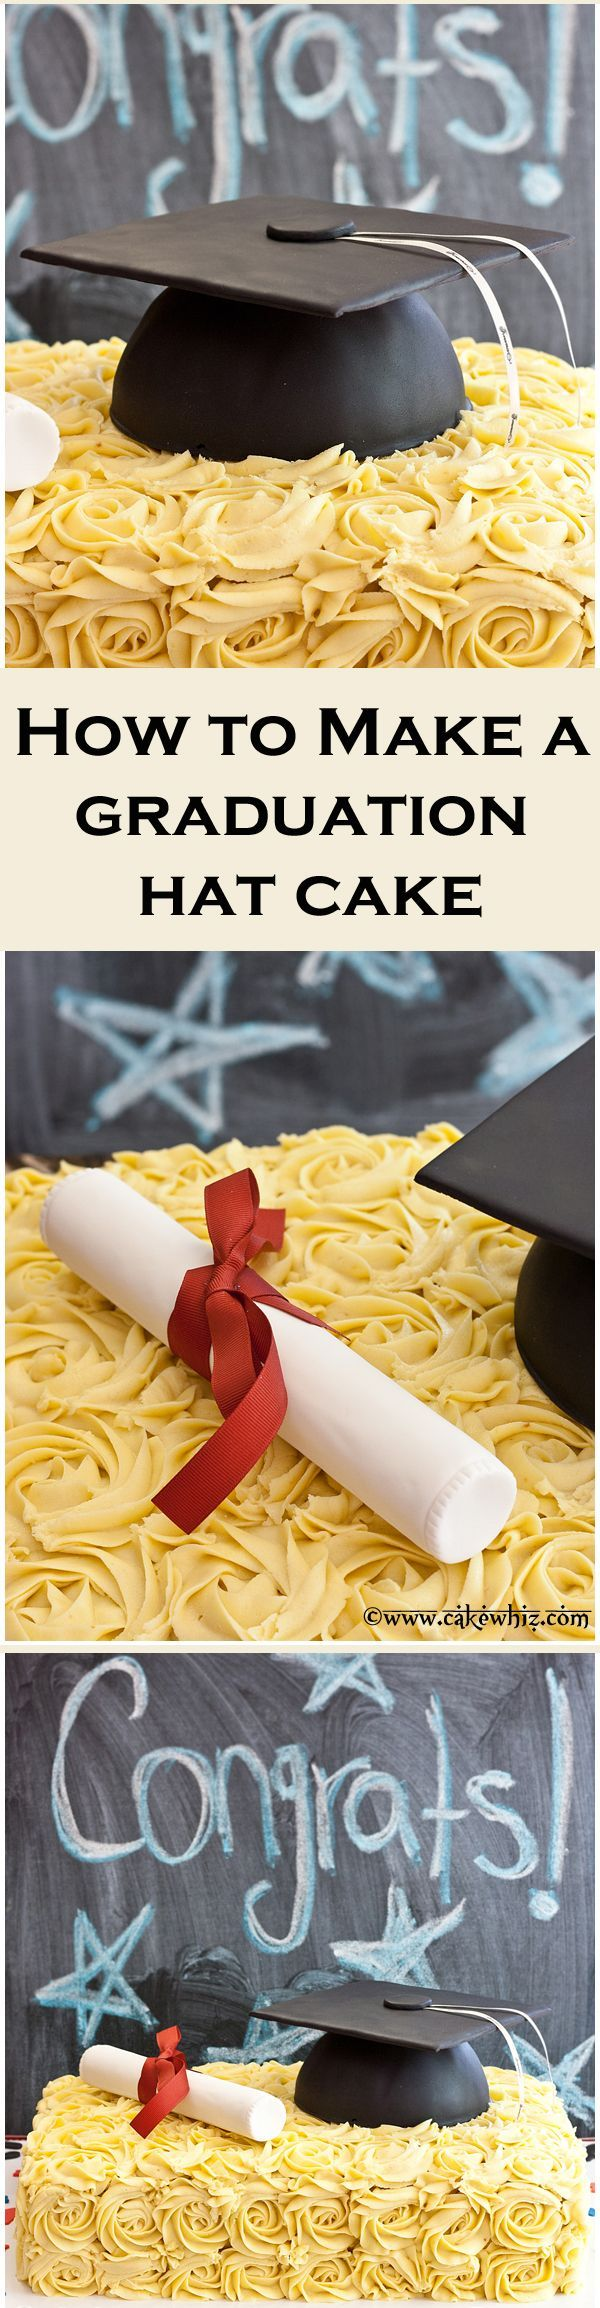 Graduation season is upon us! Learn to make a GRADUATION HAT CAKE for those awesome graduates by following along this simple tutorial! From cakewhiz.com